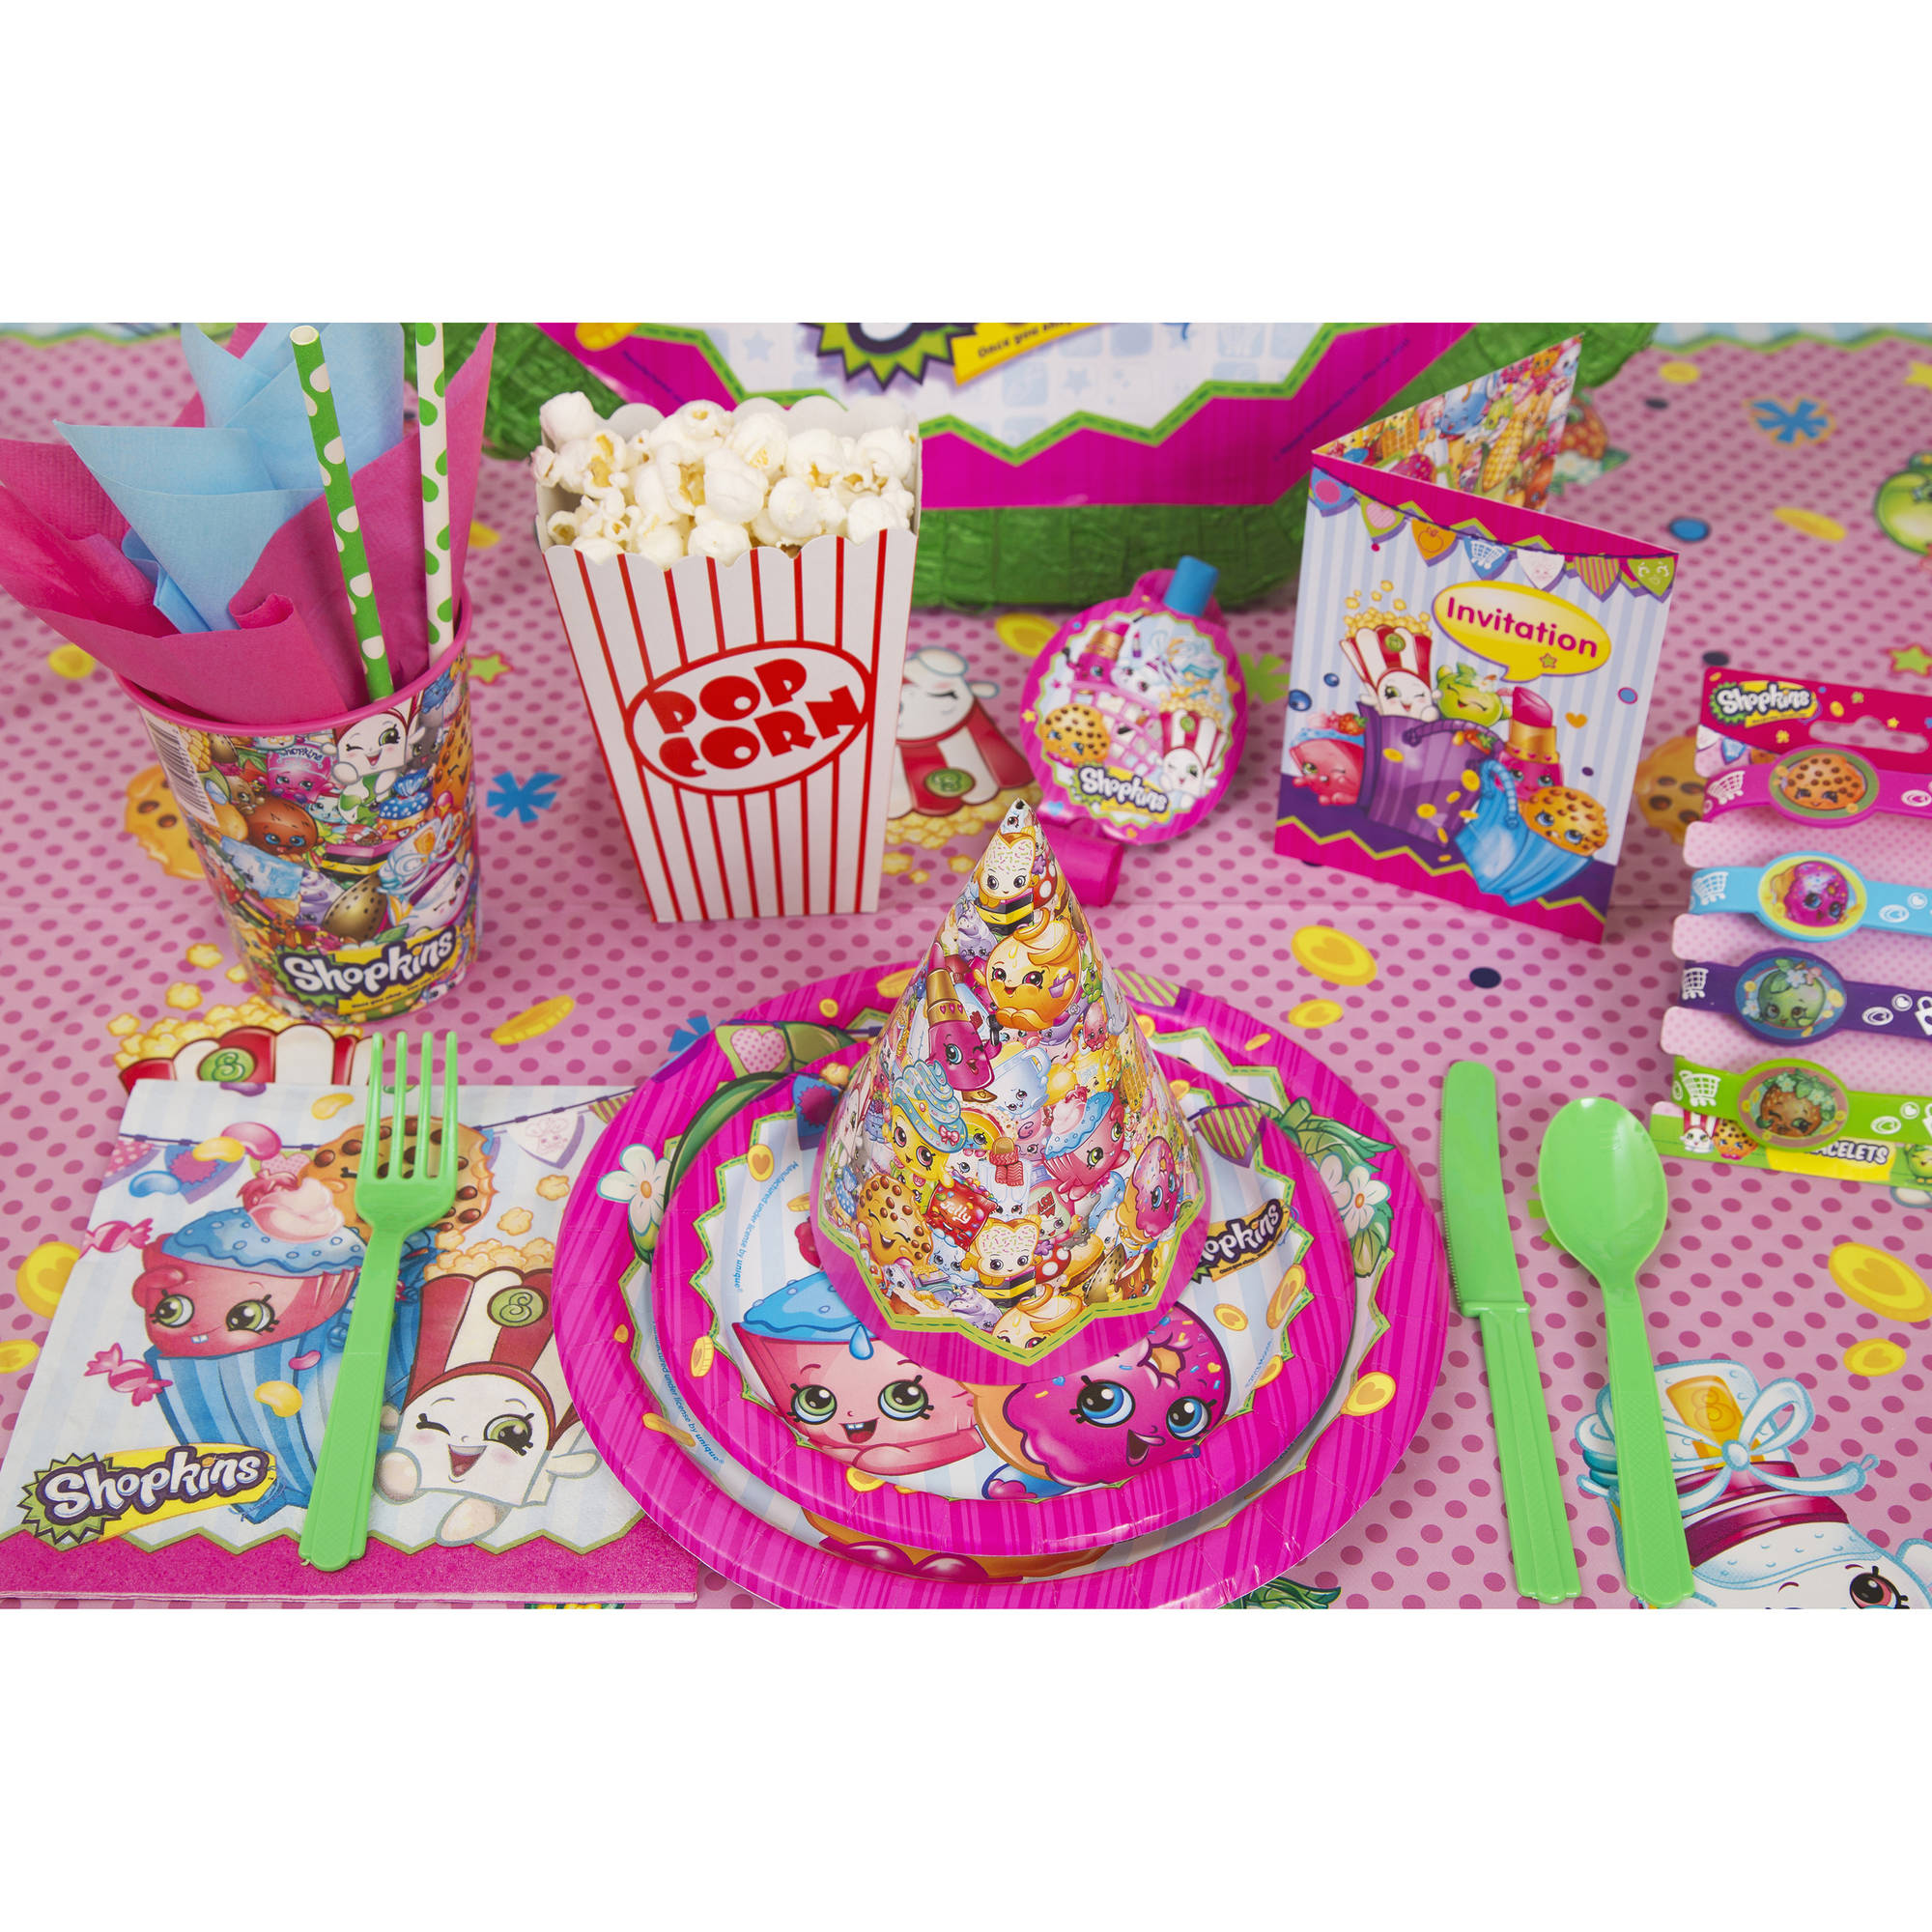 Shopkins Invitations 8ct Walmartcom